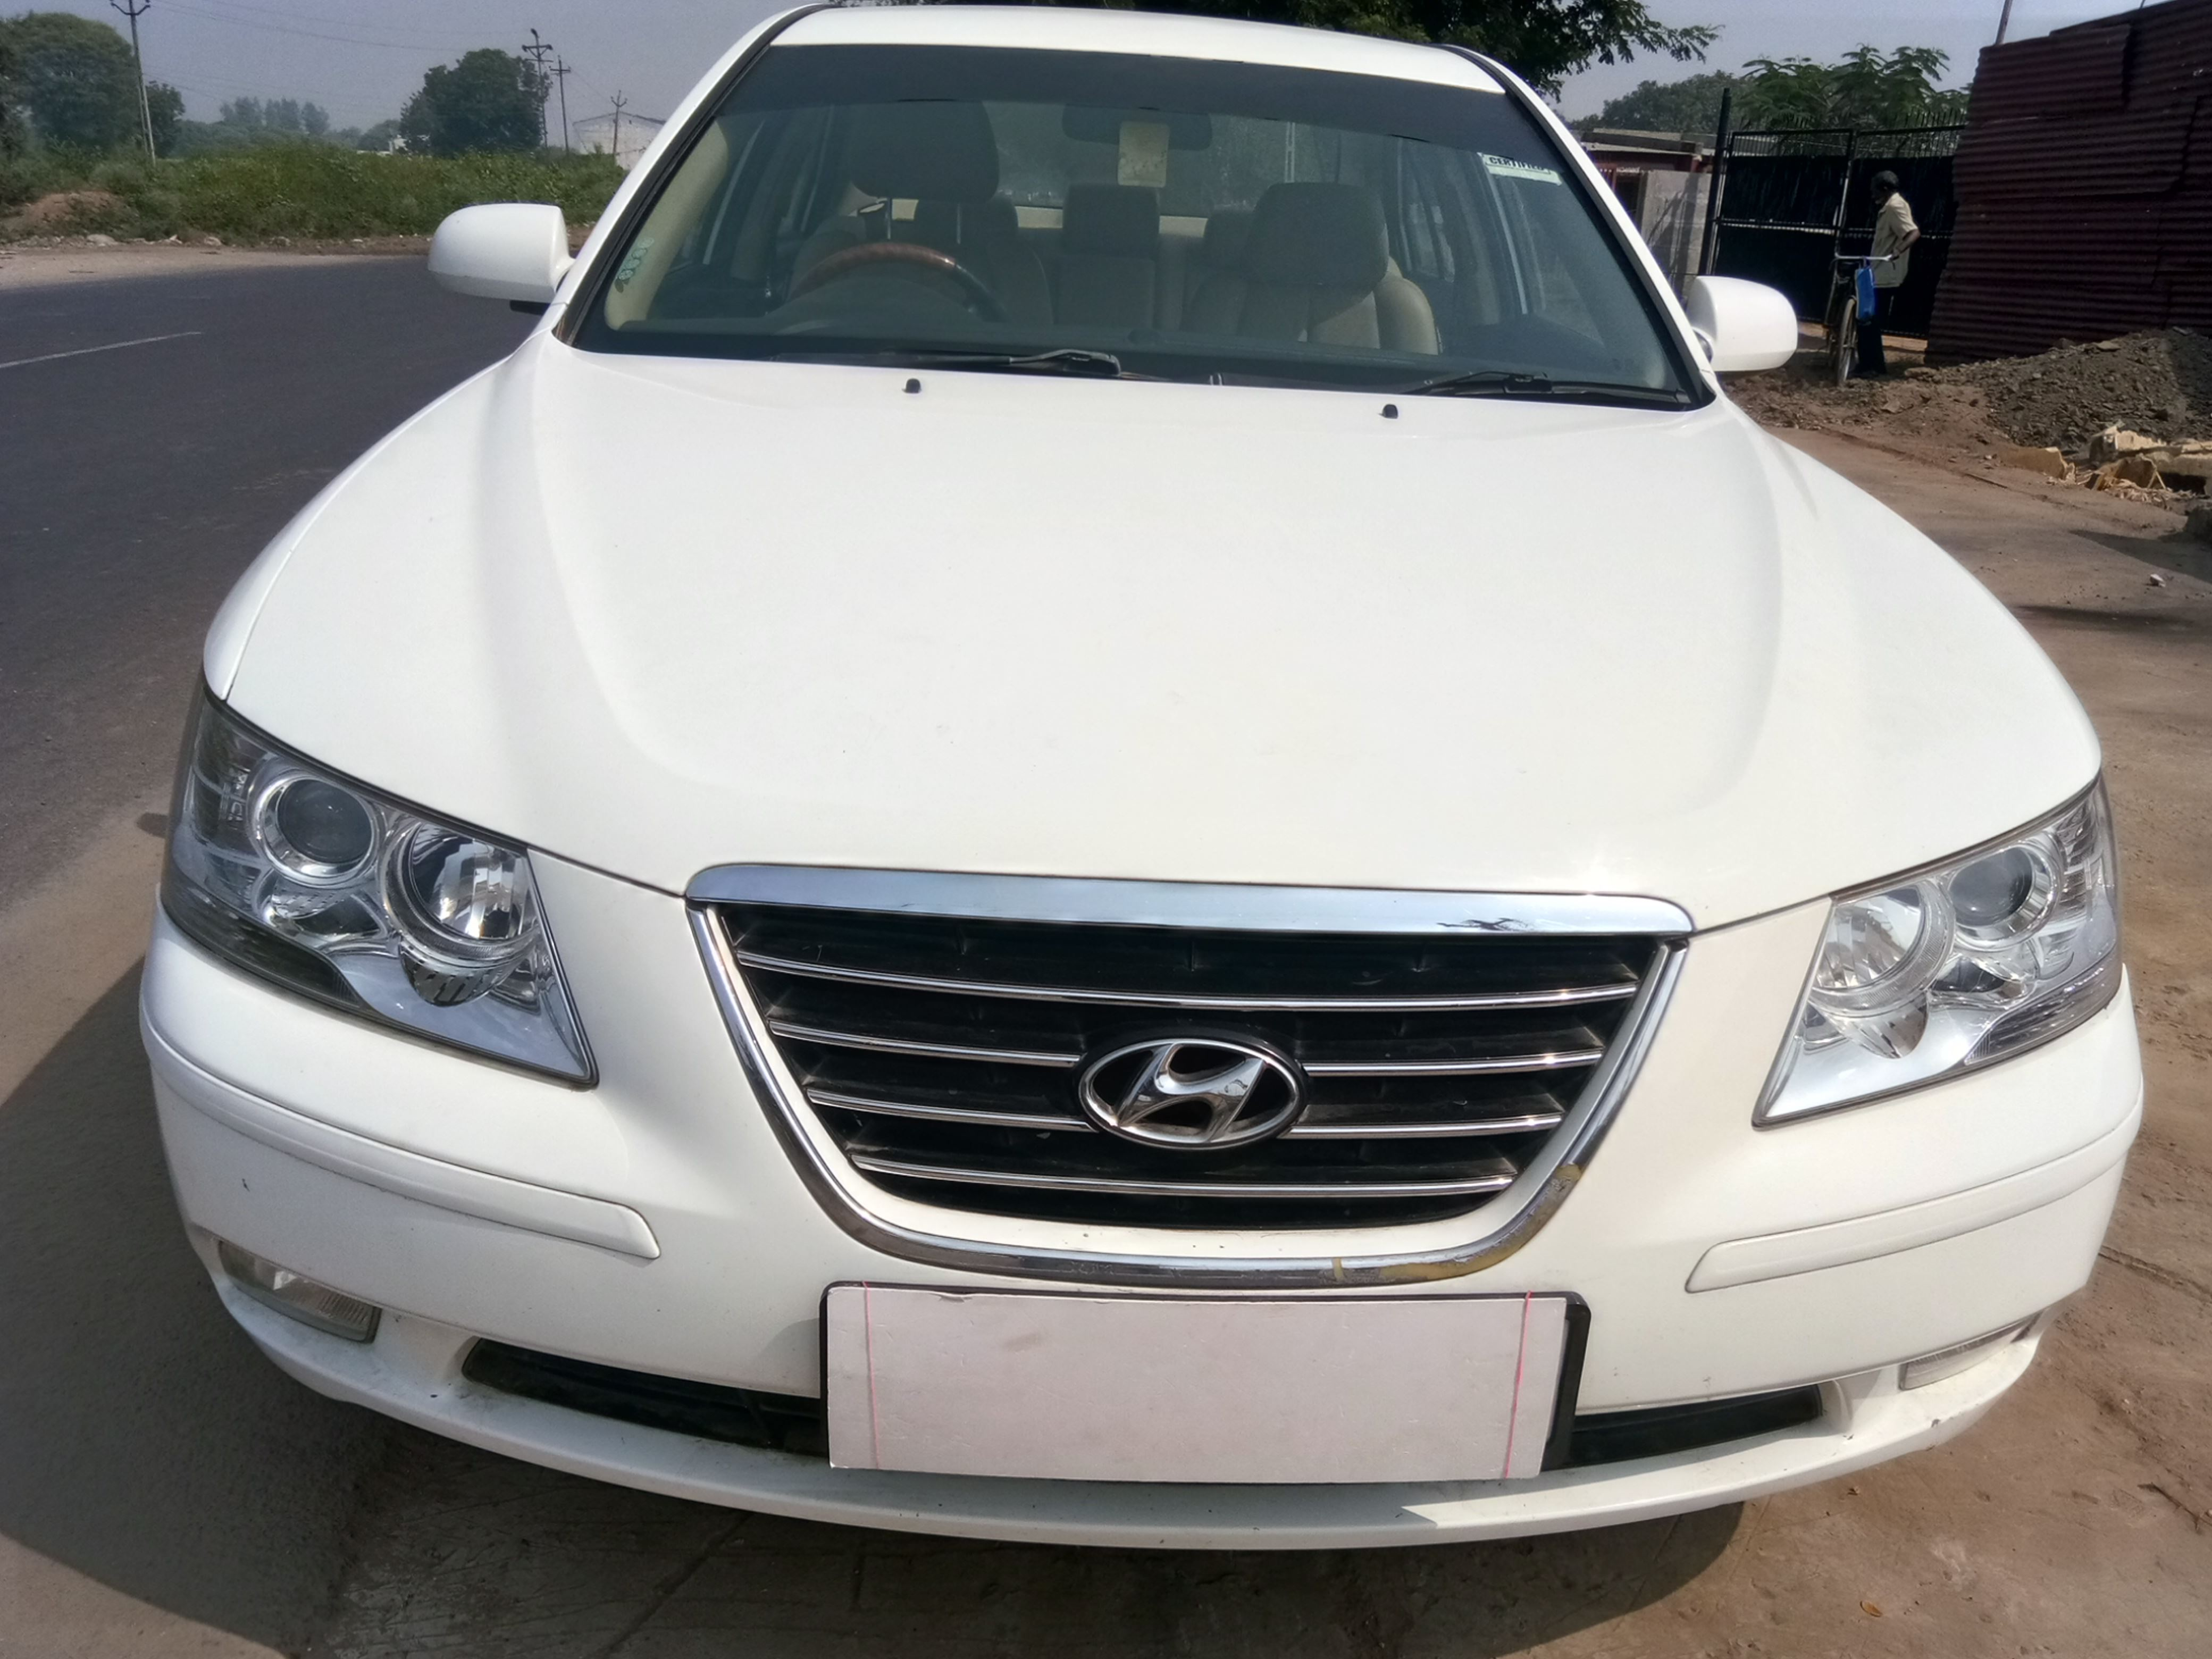 2010 Used Hyundai Sonata Transform 2.0 CRDI AT